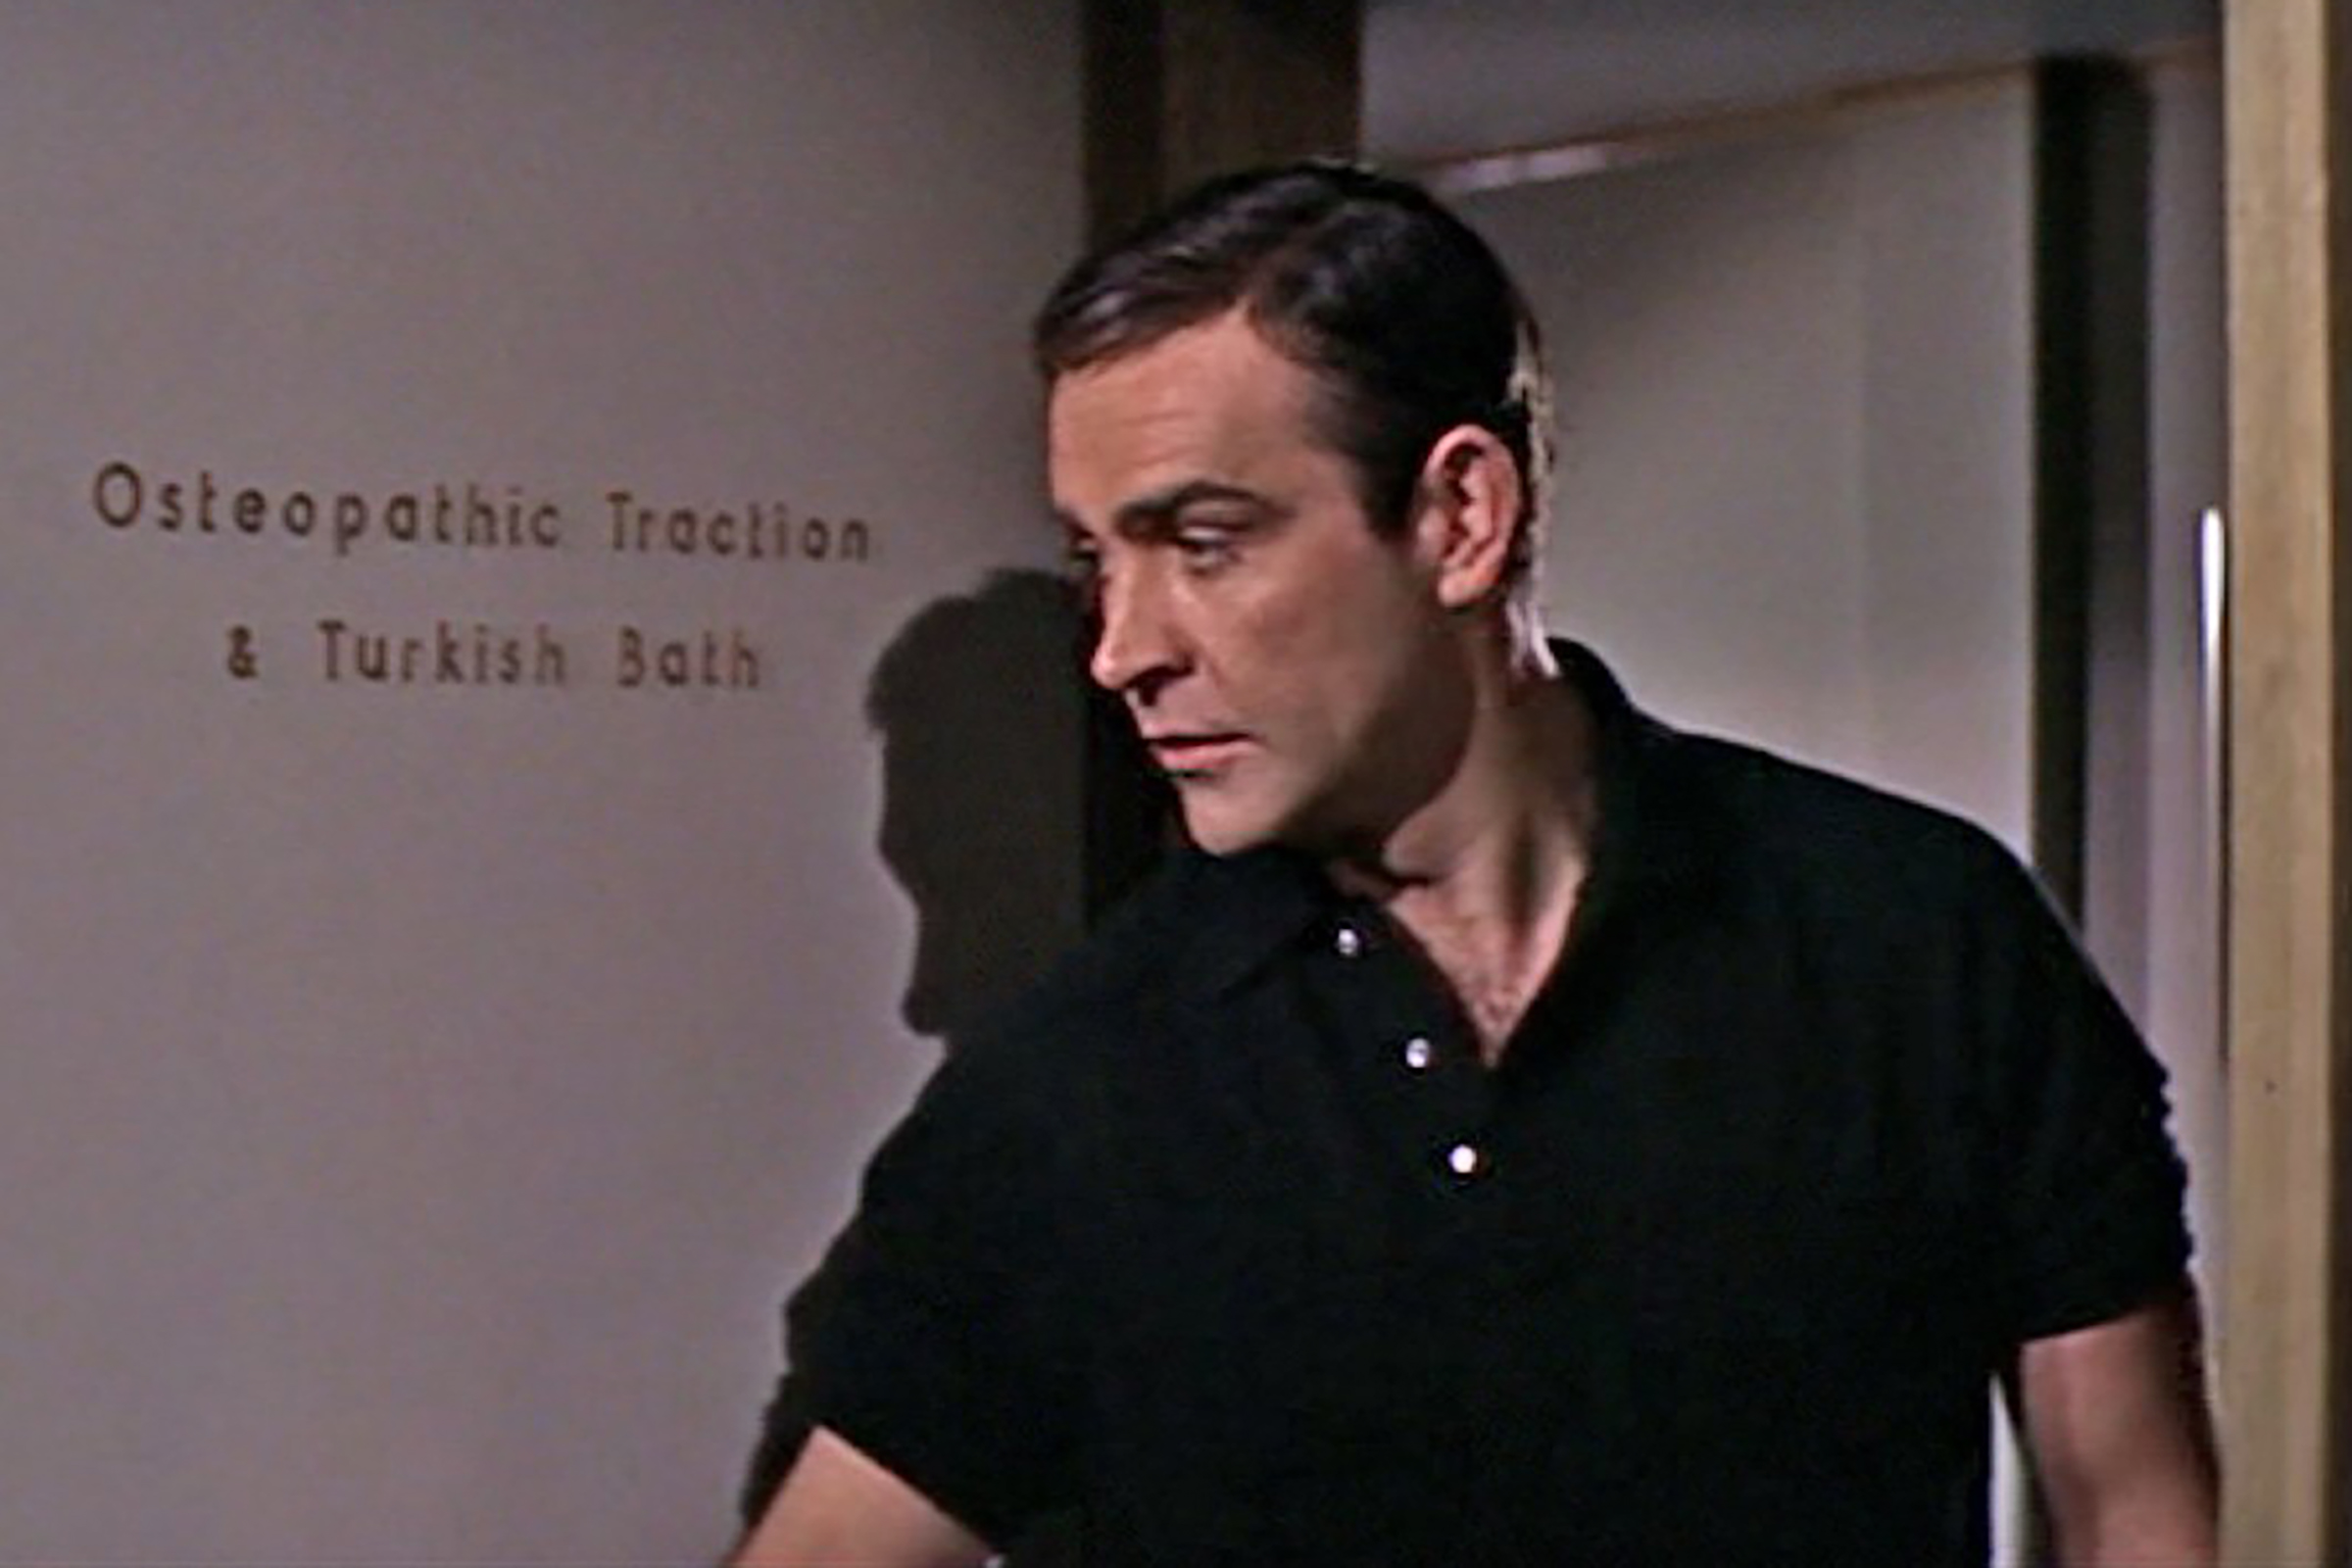 In Thunderball, Connery wears a long sleeve polo with the sleeves rolled up.